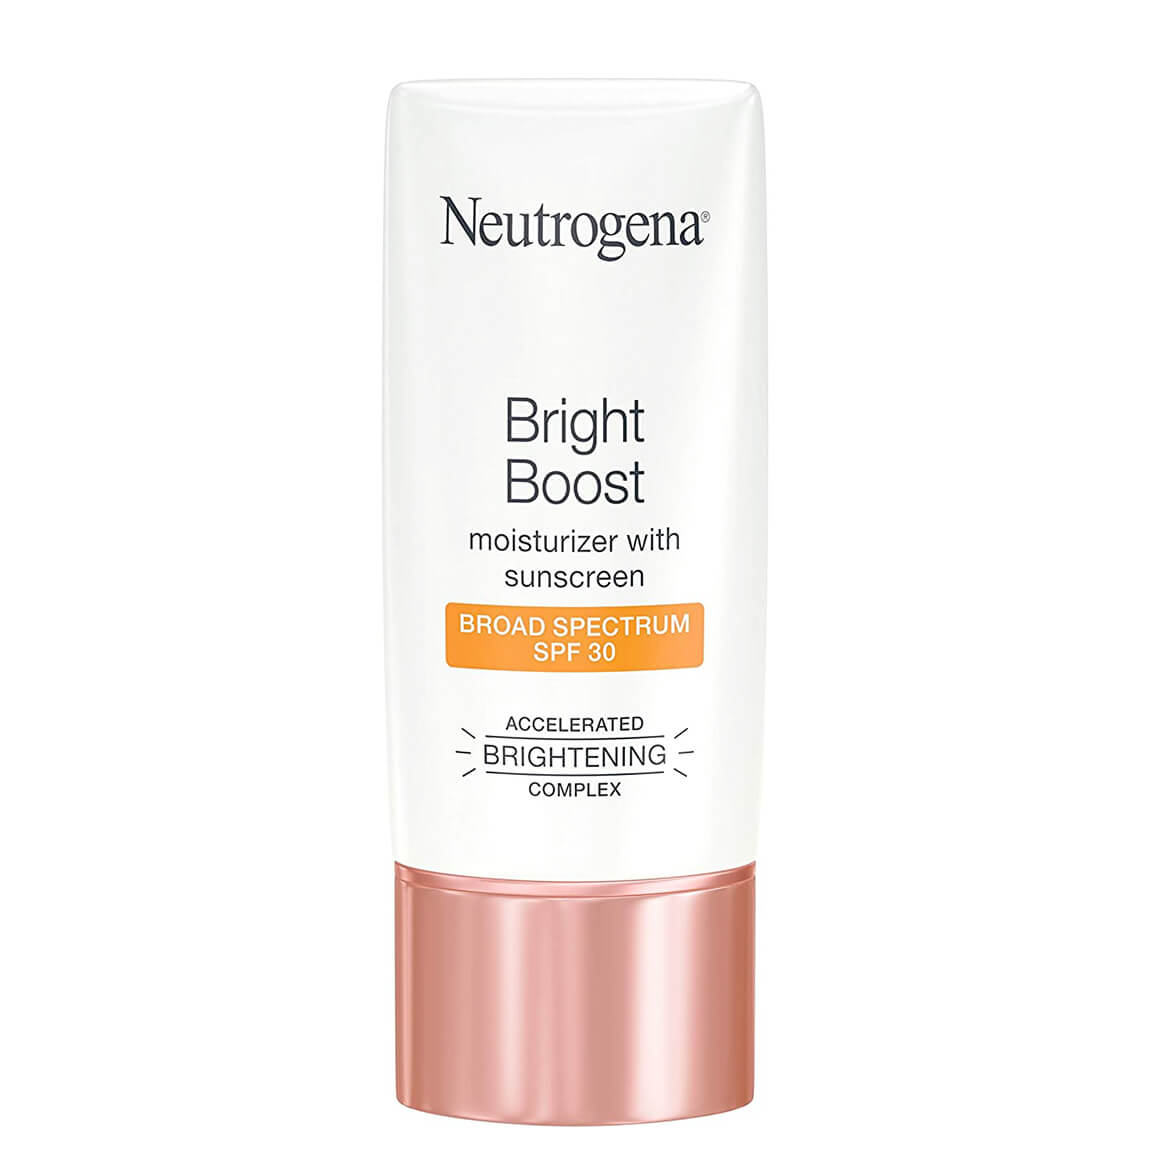 Neutrogena Bright Boost Facial Moisturizer with SPF30 30ml